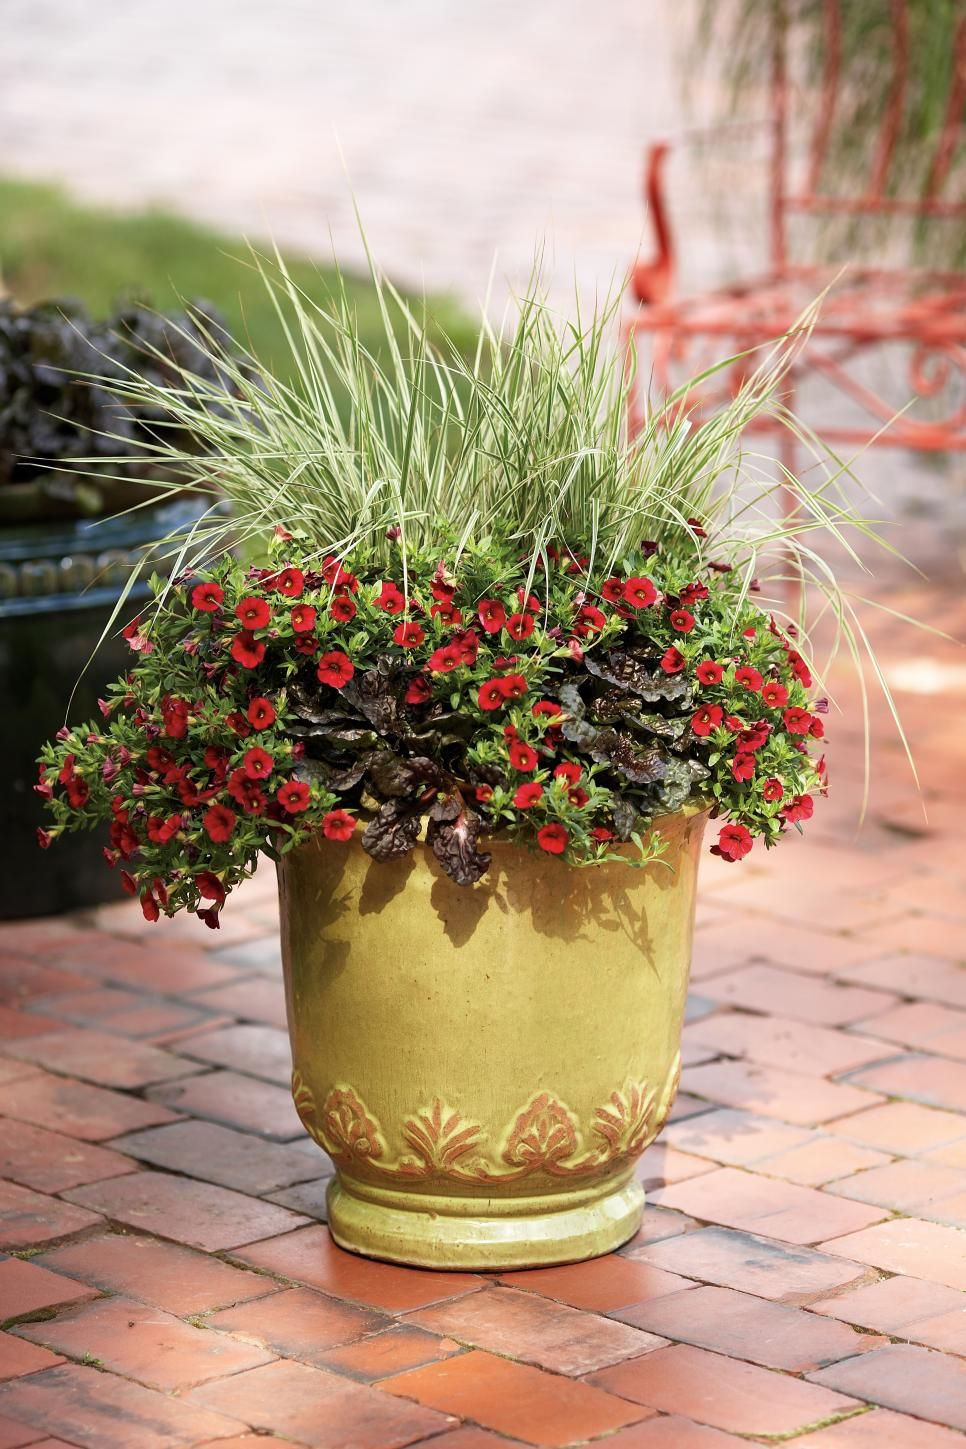 Dress up your pots with eye-catching ornamental grasses.